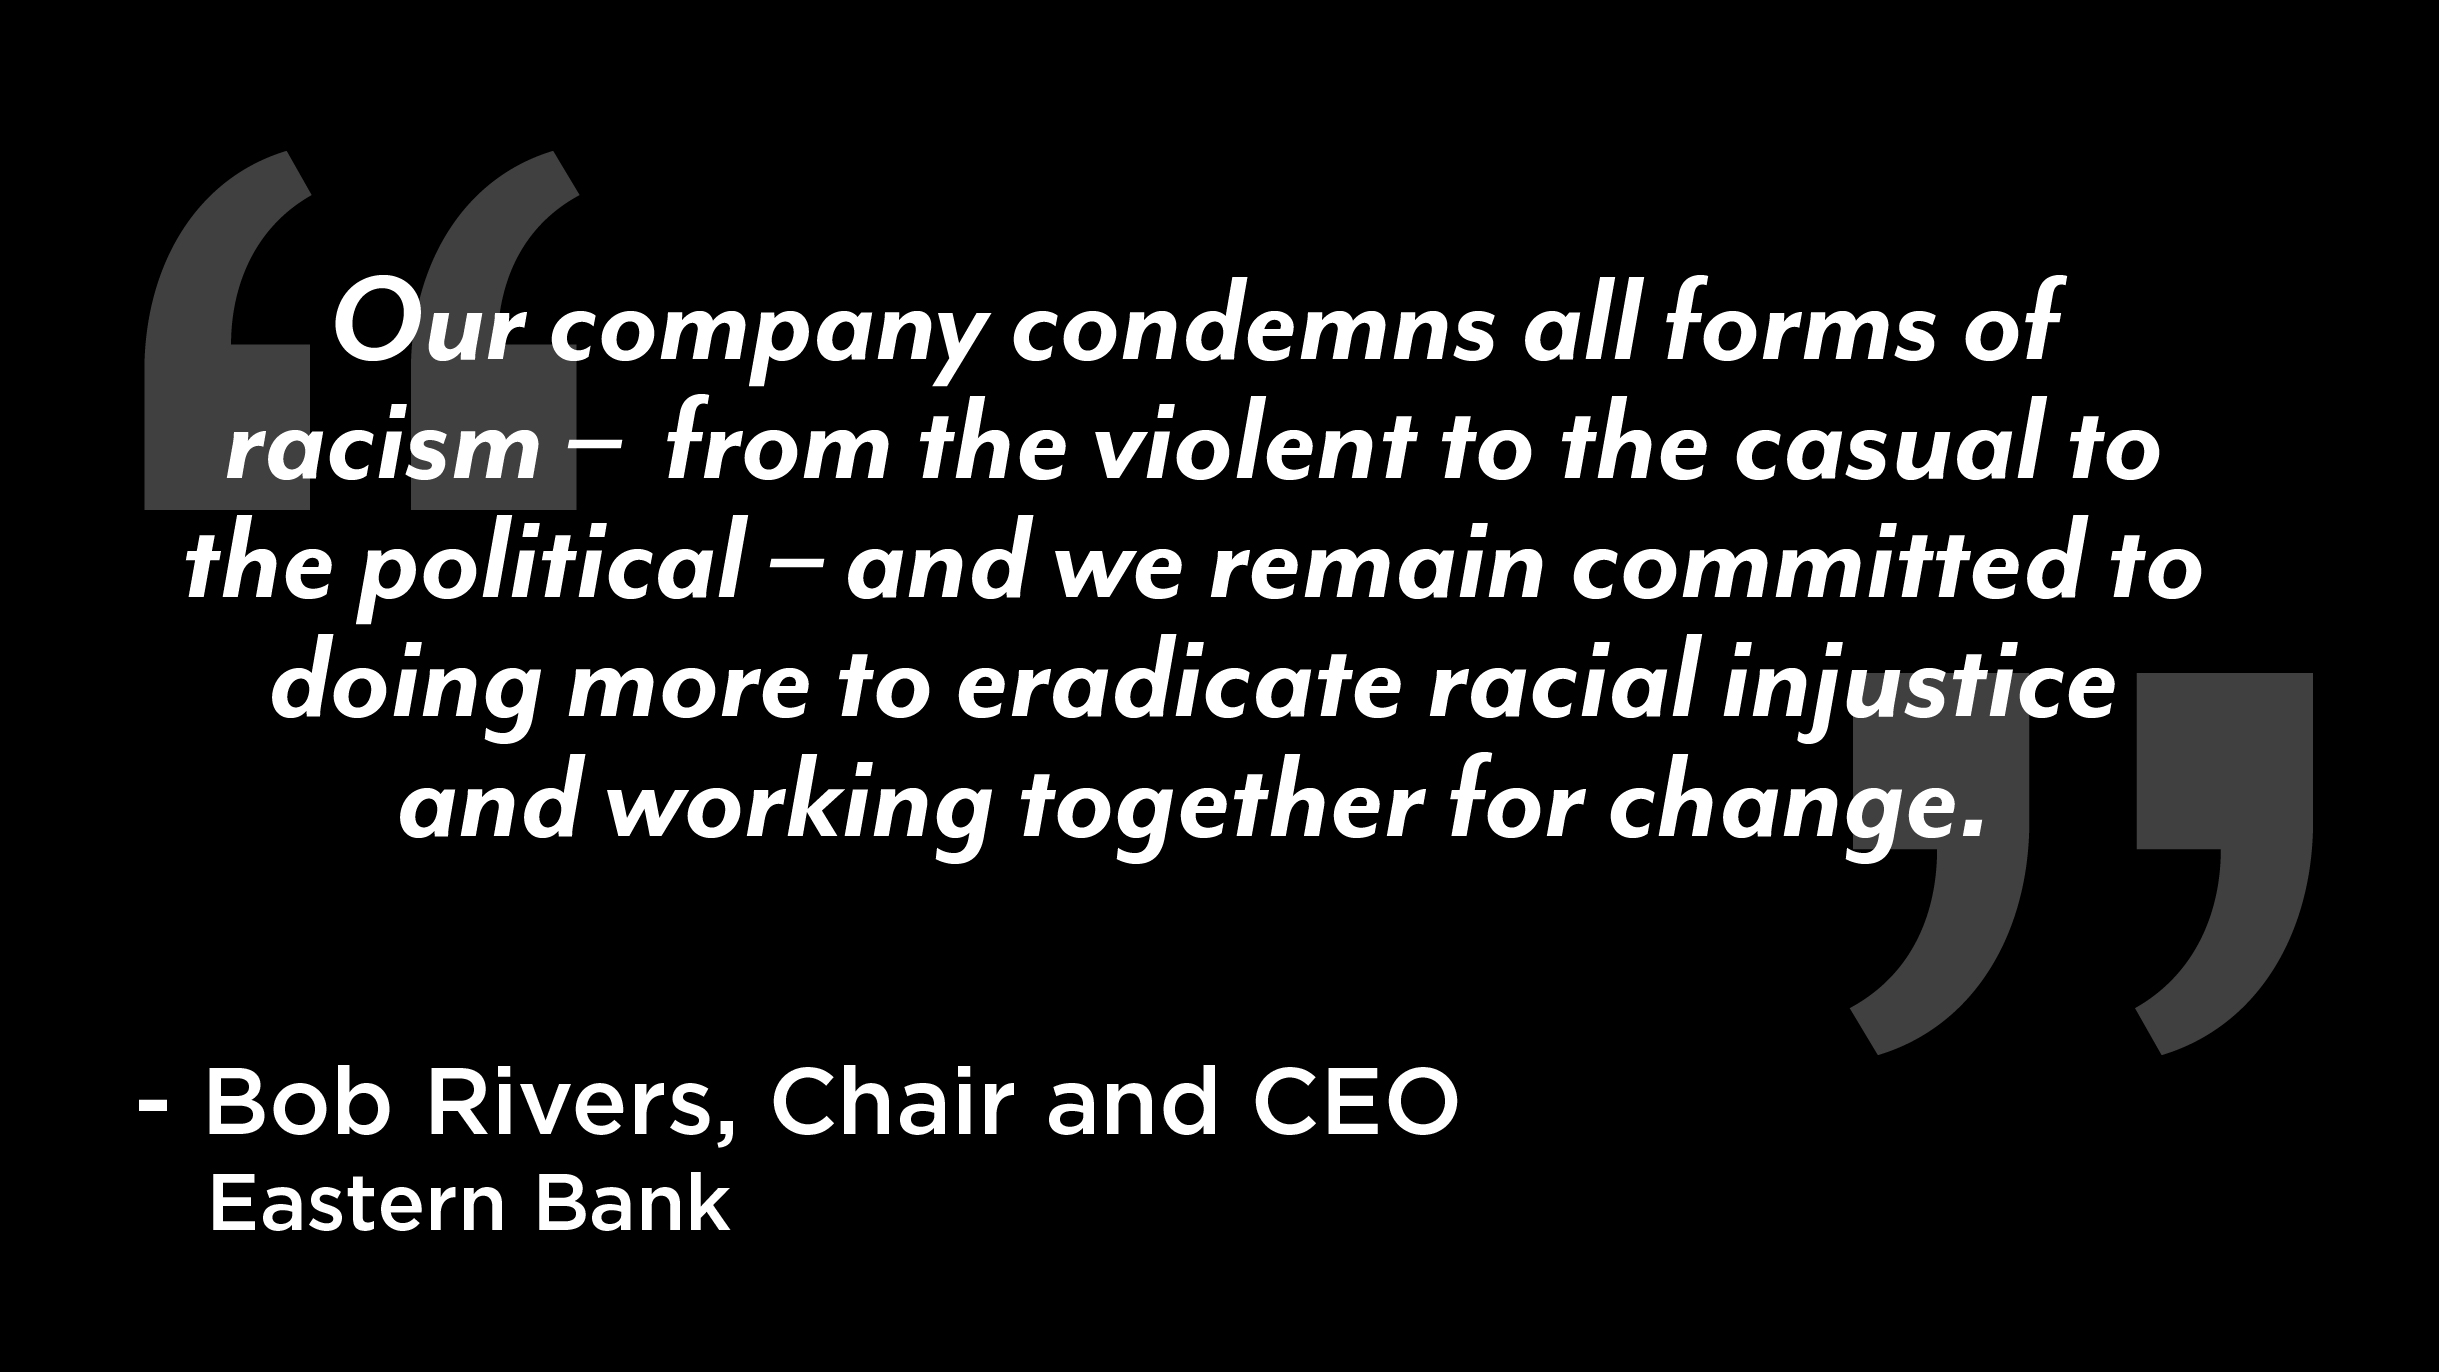 "Our company condemns all forms of racism – from the violent to the casual to the political – and we remain committed to doing more to eradicate racial injustice and working together for change."" – Bob Rivers, Chair and CEO of Eastern Bank"